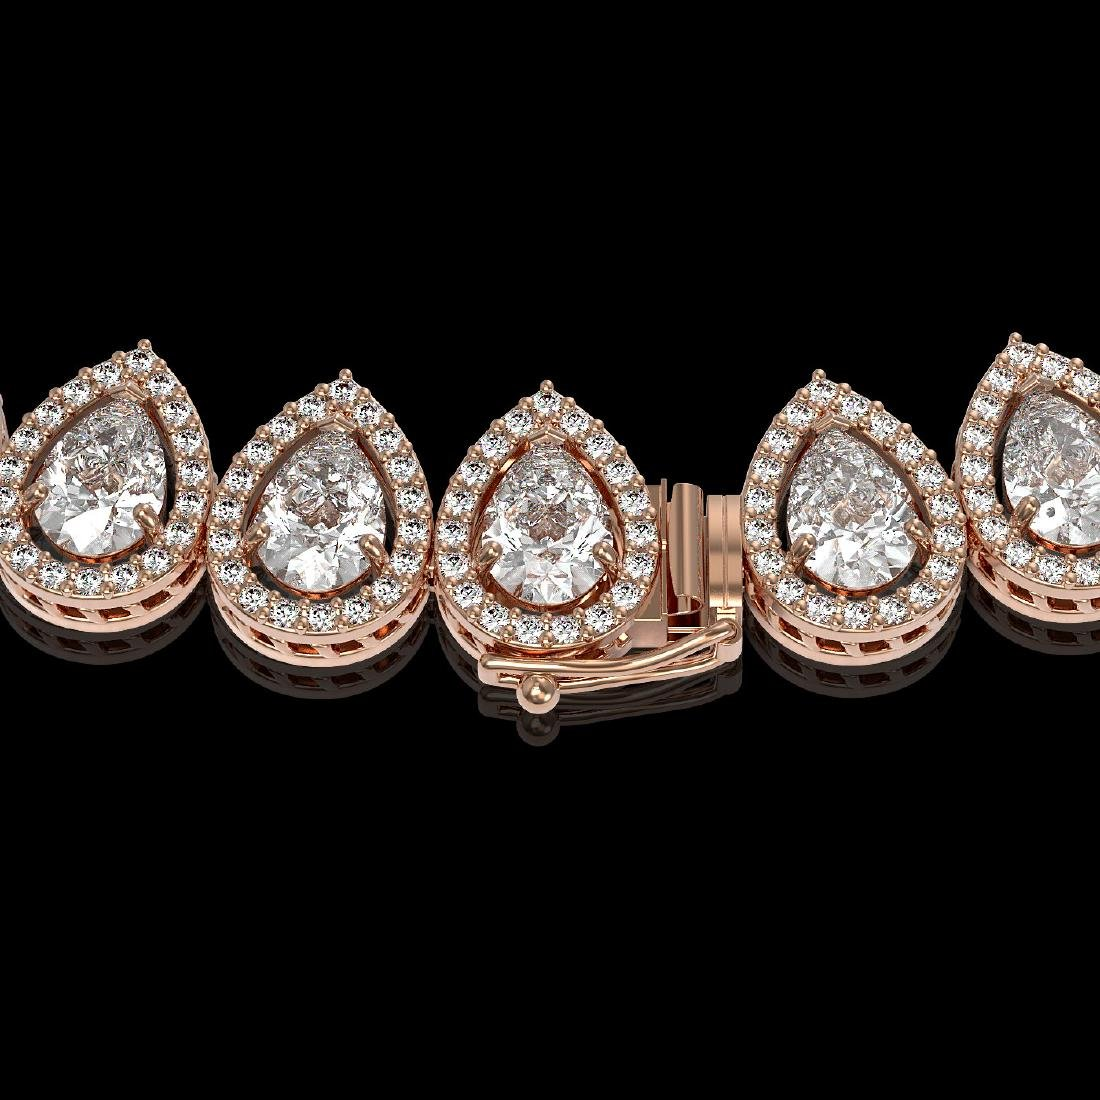 34.83 CTW Pear Diamond Designer Necklace 18K Rose Gold - 3